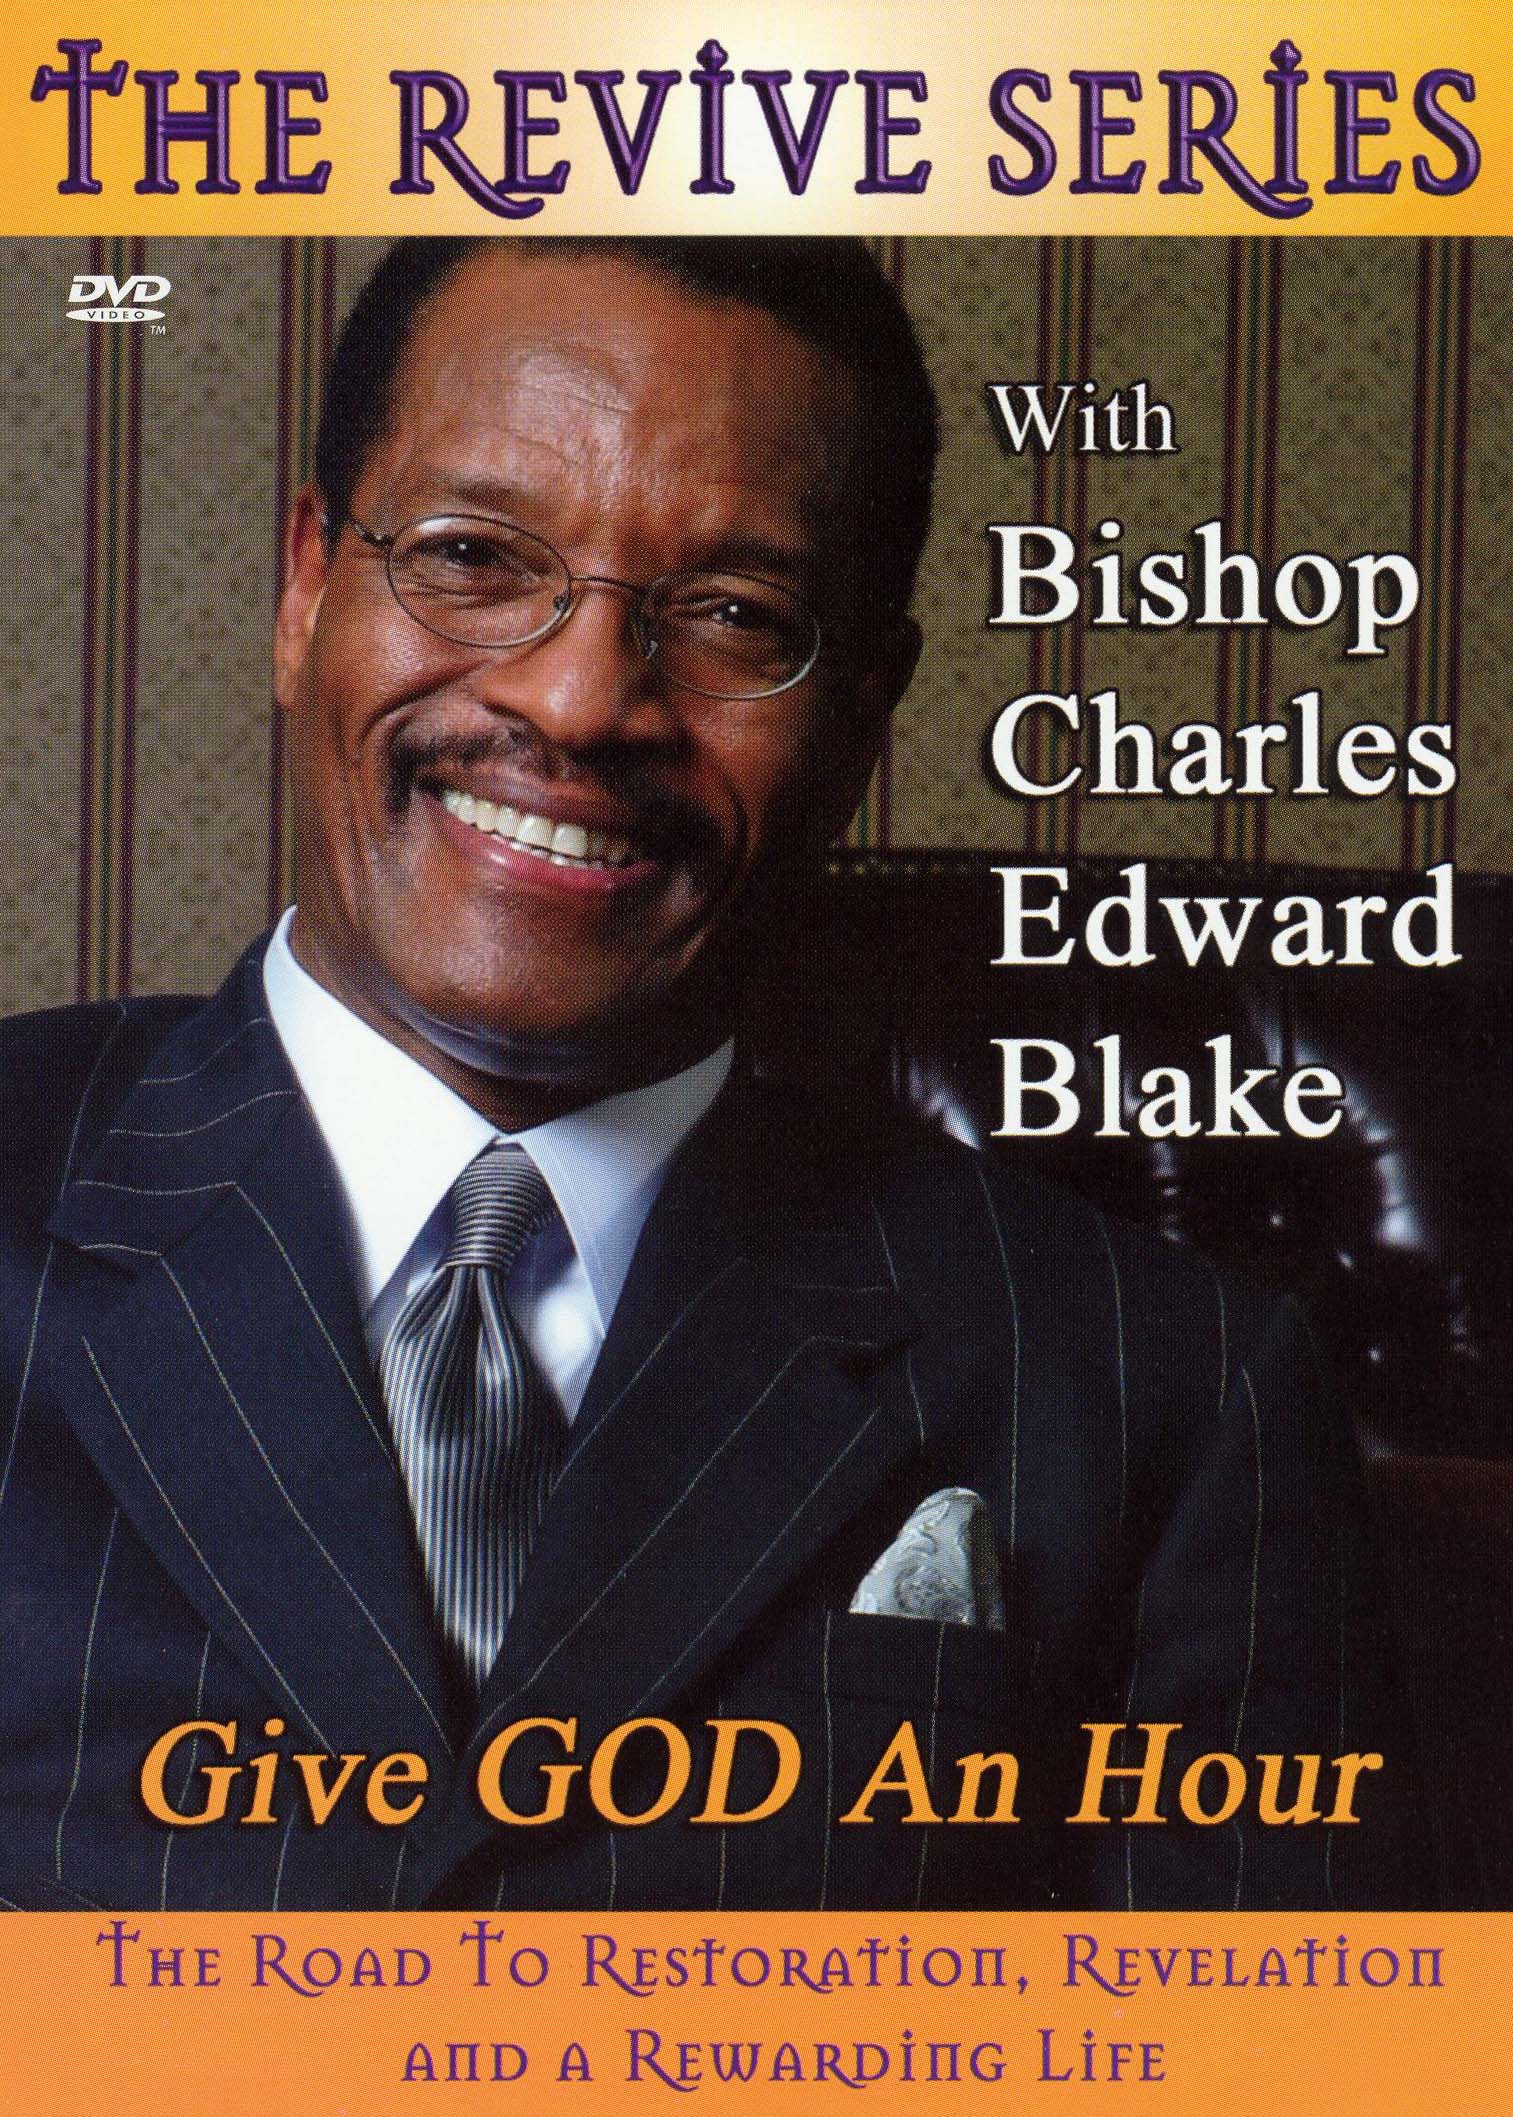 Bishop Charles Edward Blake: The Revive Series - Give God an Hour